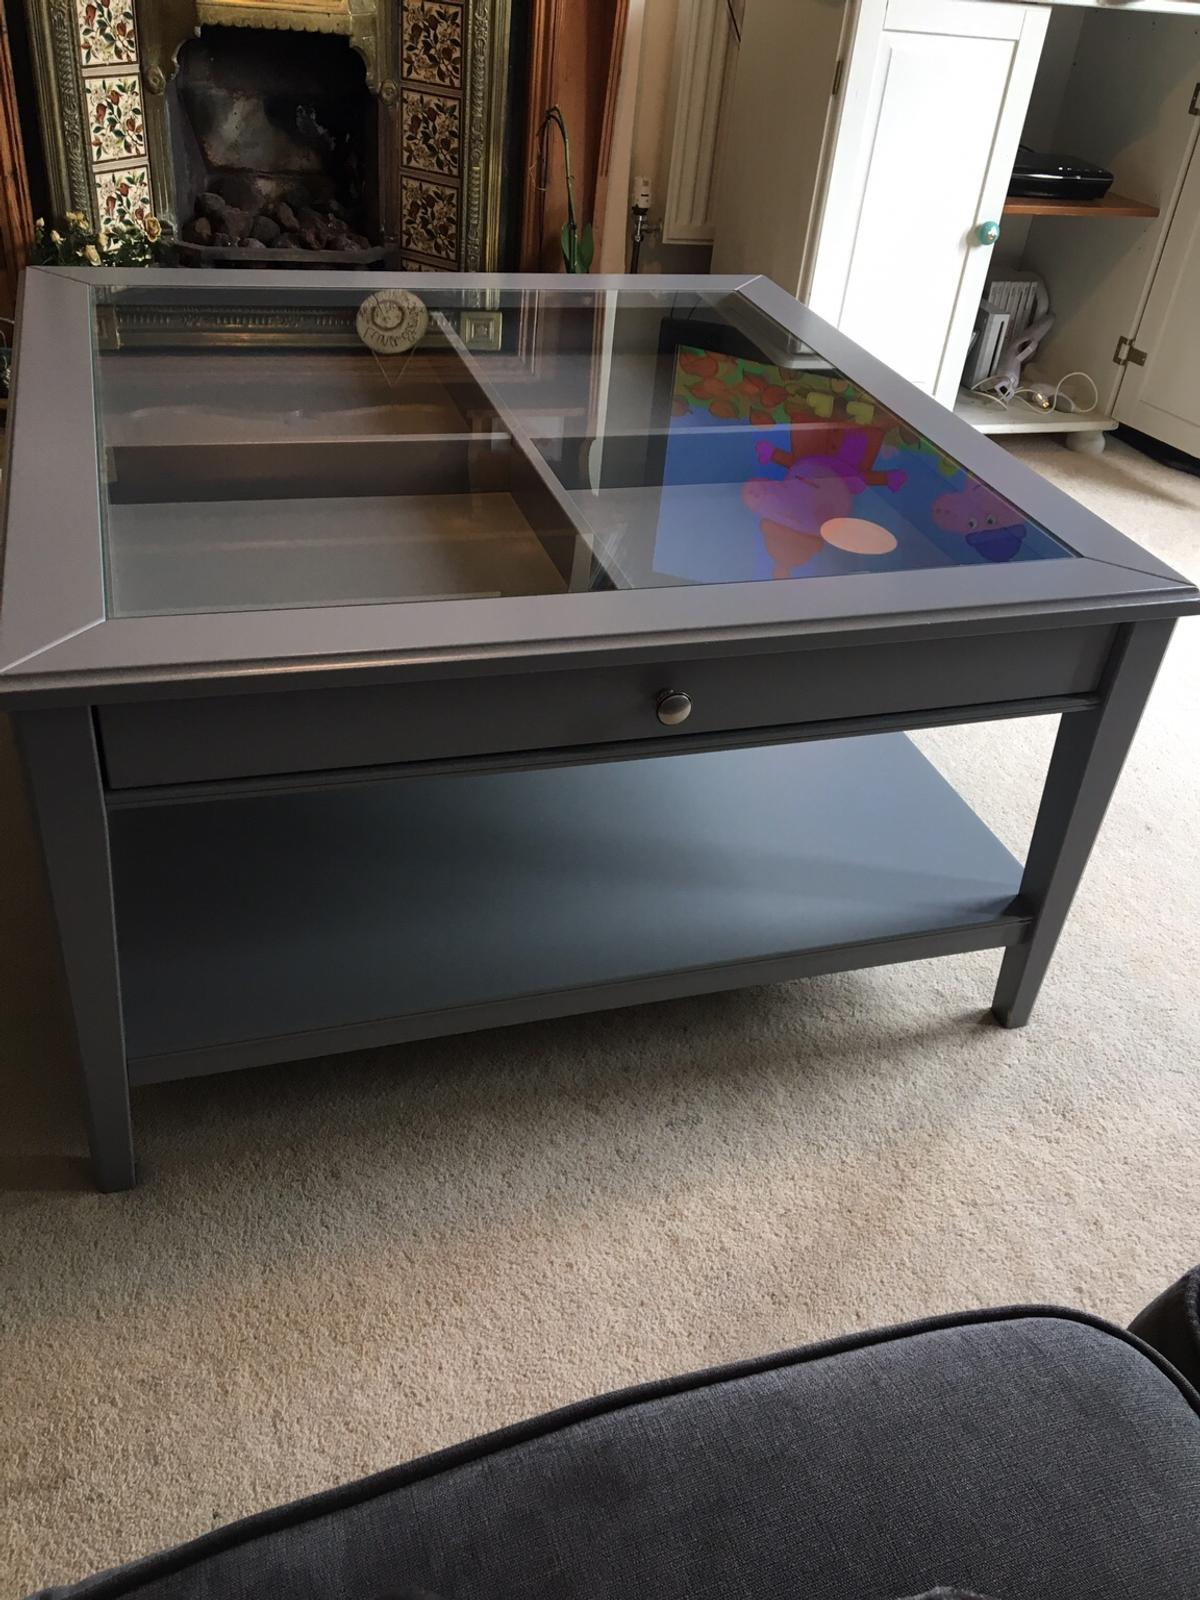 Ikea Coffee Table In Ct21 Hythe For 4000 For Sale Shpock